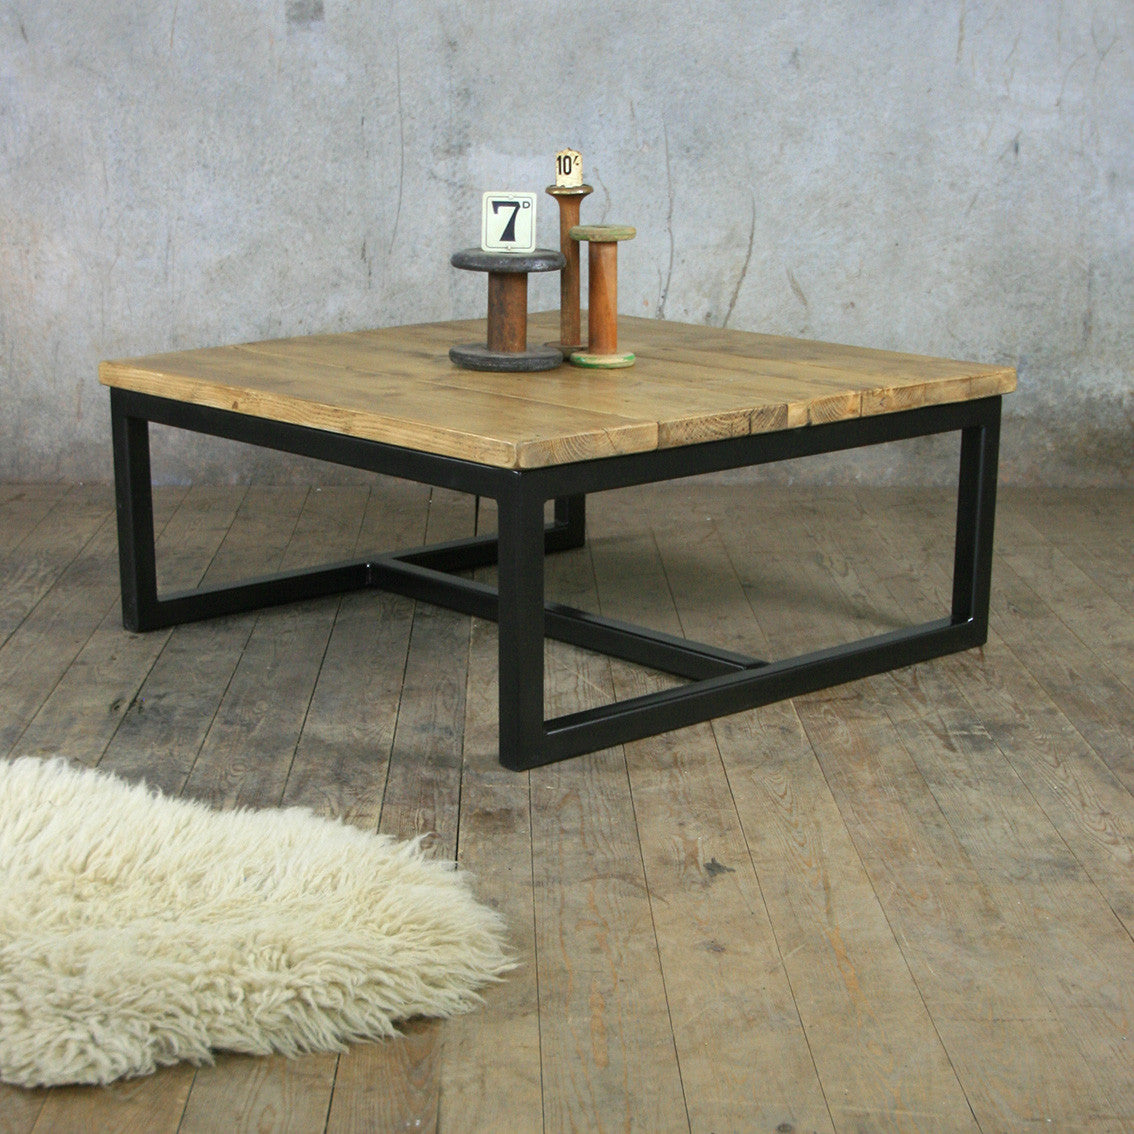 The Harnall Square Rustic Coffee Table In Stock Mustard Vintage